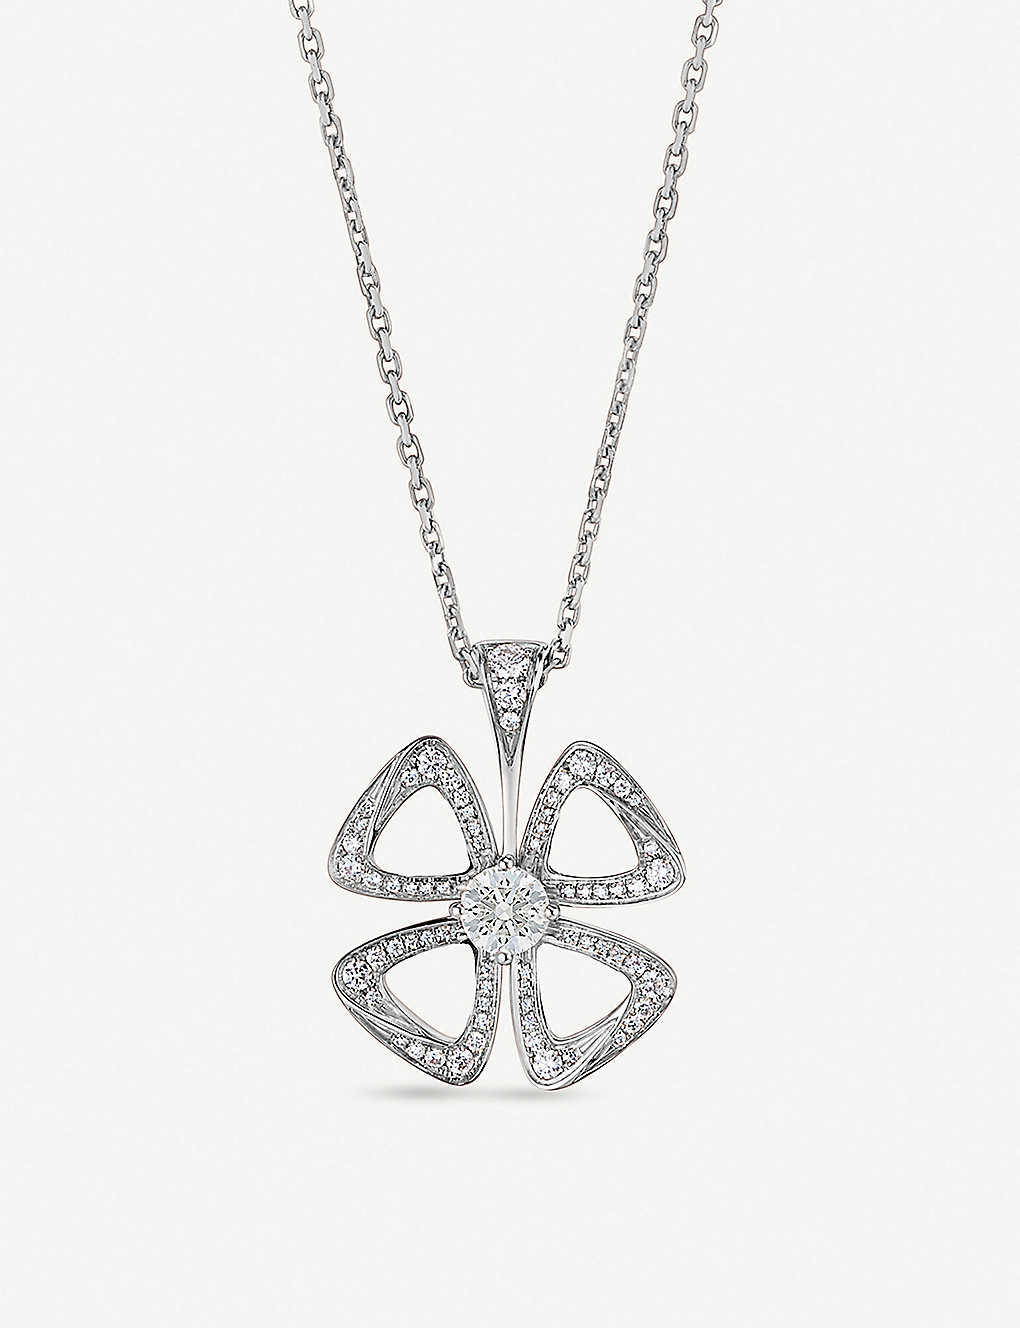 e8a0a3ca0f1f7 BVLGARI - Fiorever 18ct white-gold and diamond necklace | Selfridges.com